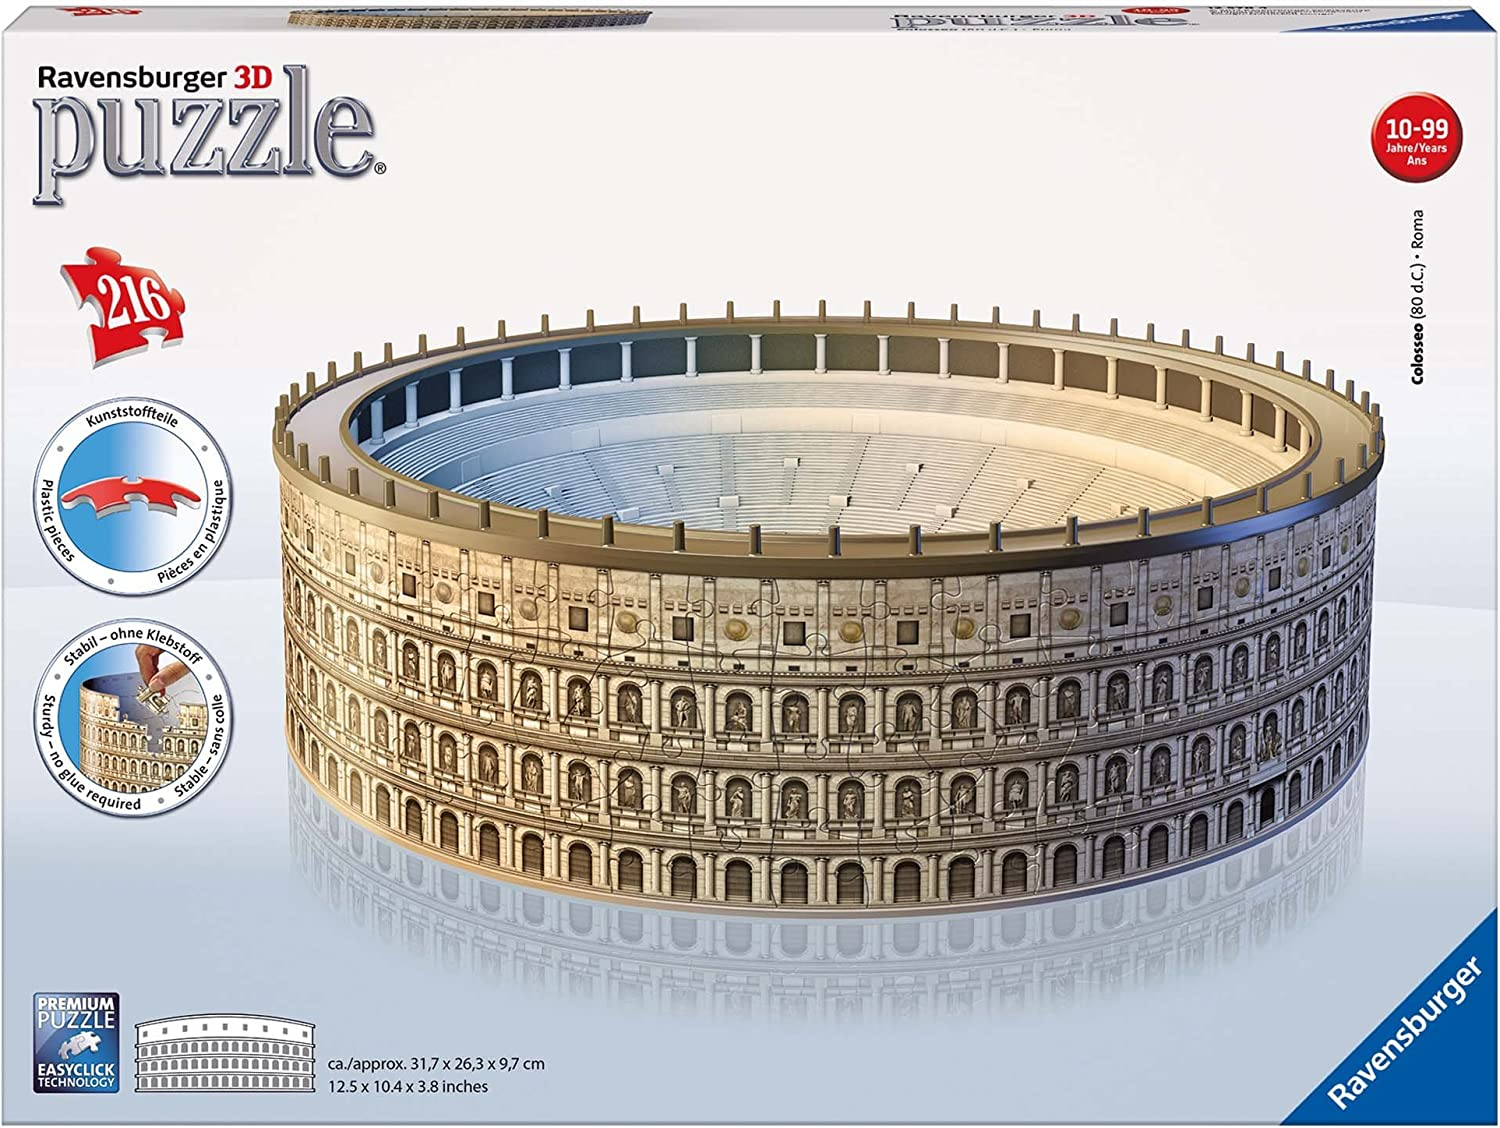 f4A Ravensburger Italy Puzzle 3D Eiffel Tower-Edizione Speciale Notte 216